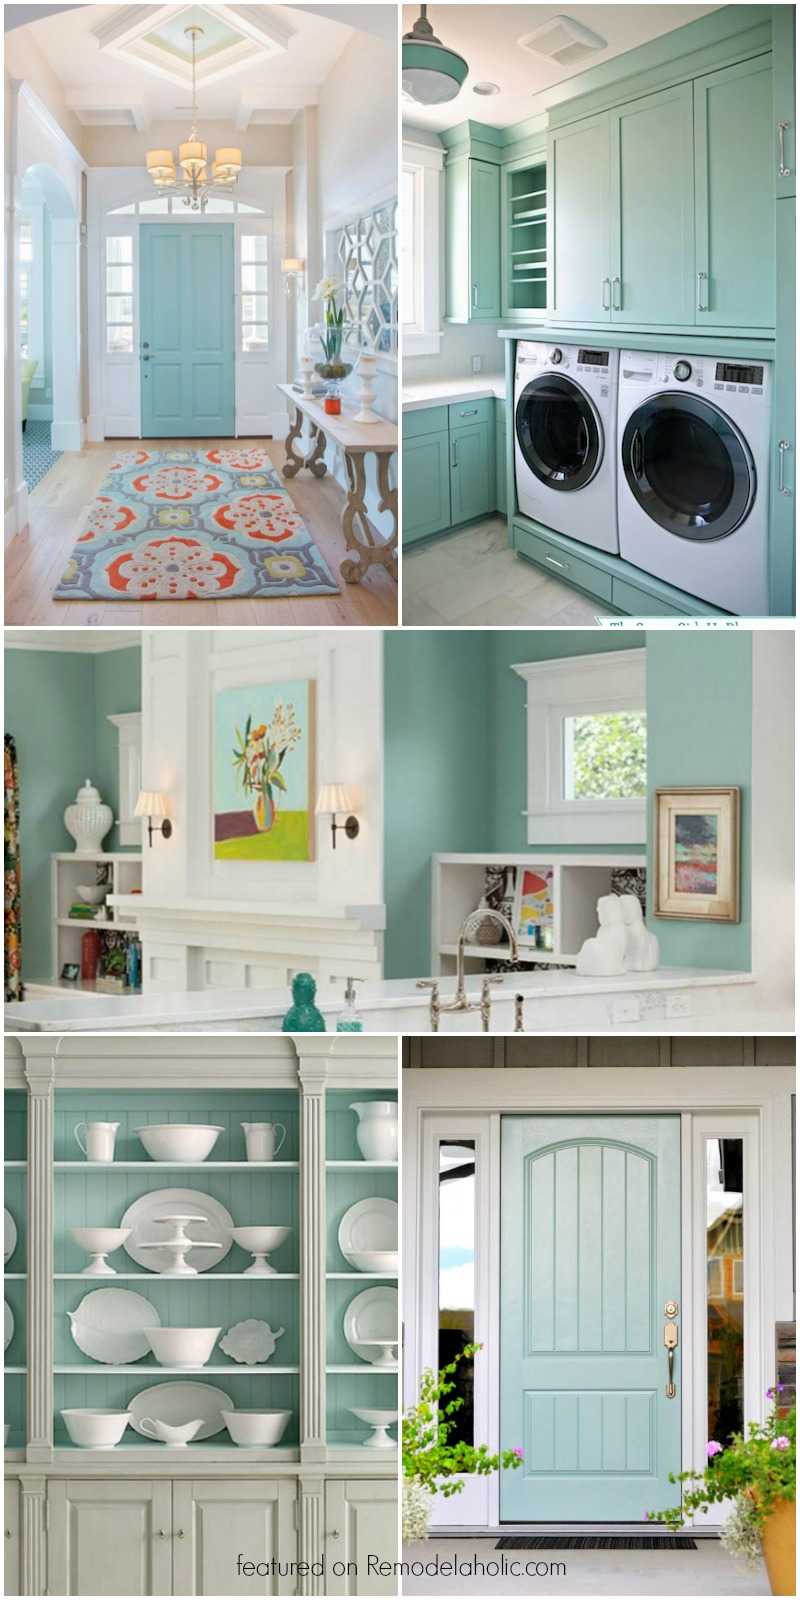 This Beautiful Light Blue Gray Paint Color Is So Versatile Interiors And Exteriors